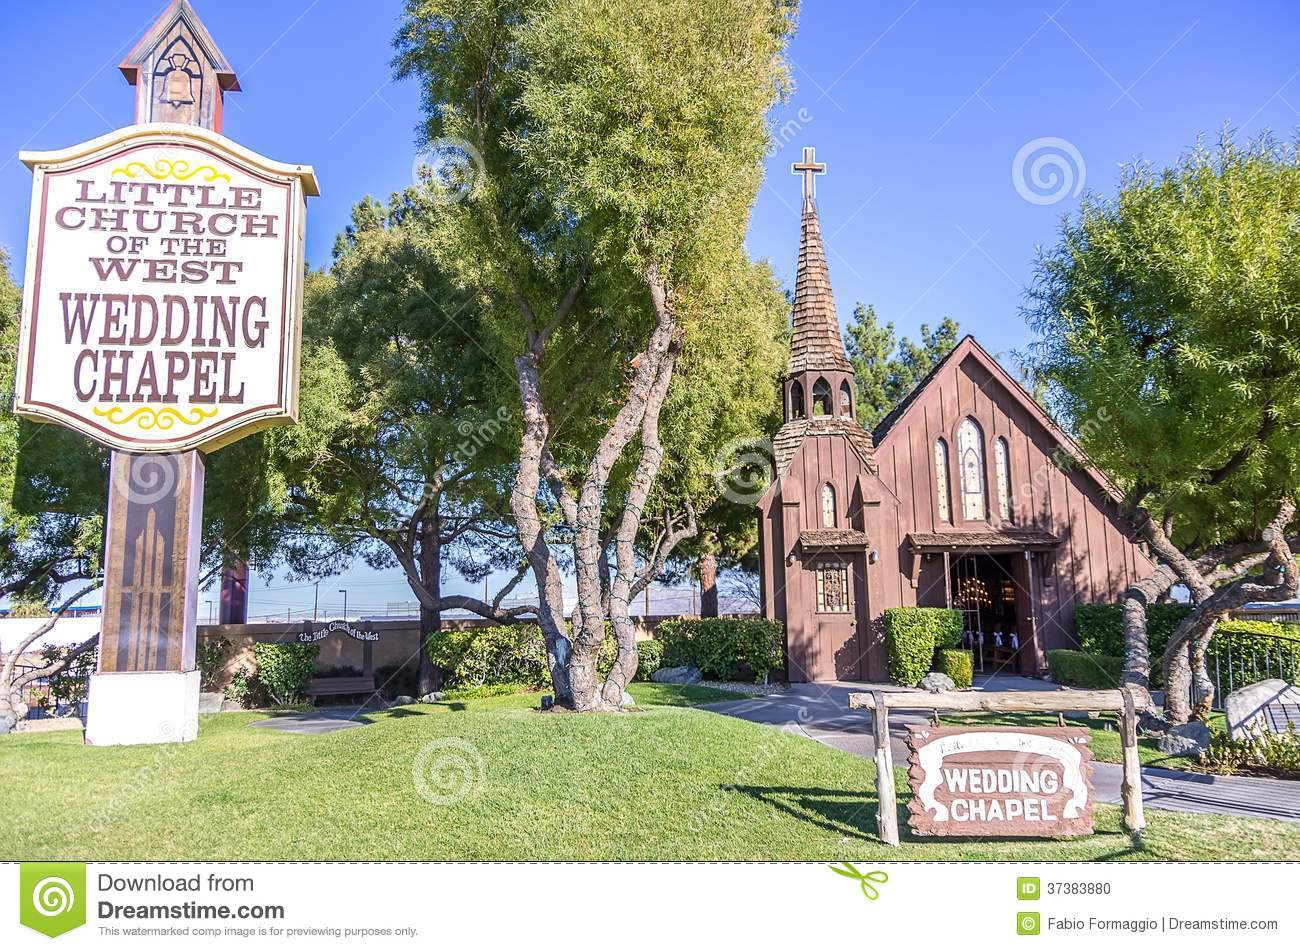 Little church of the west wedding chapel editorial image for Little las vegas